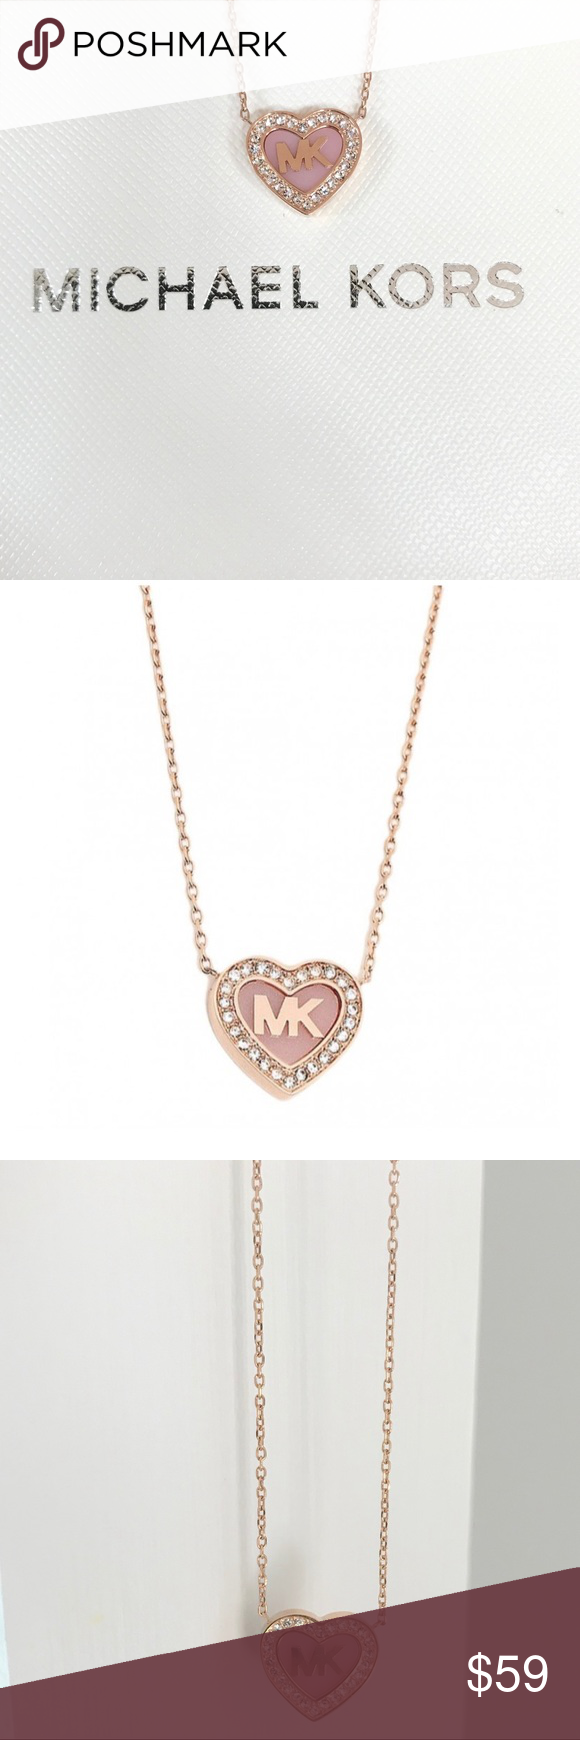 a442e989de6a4 New authentic MK rose gold tone pave heart pendant Anchored with a heart-shaped  pendant encircled with crystals